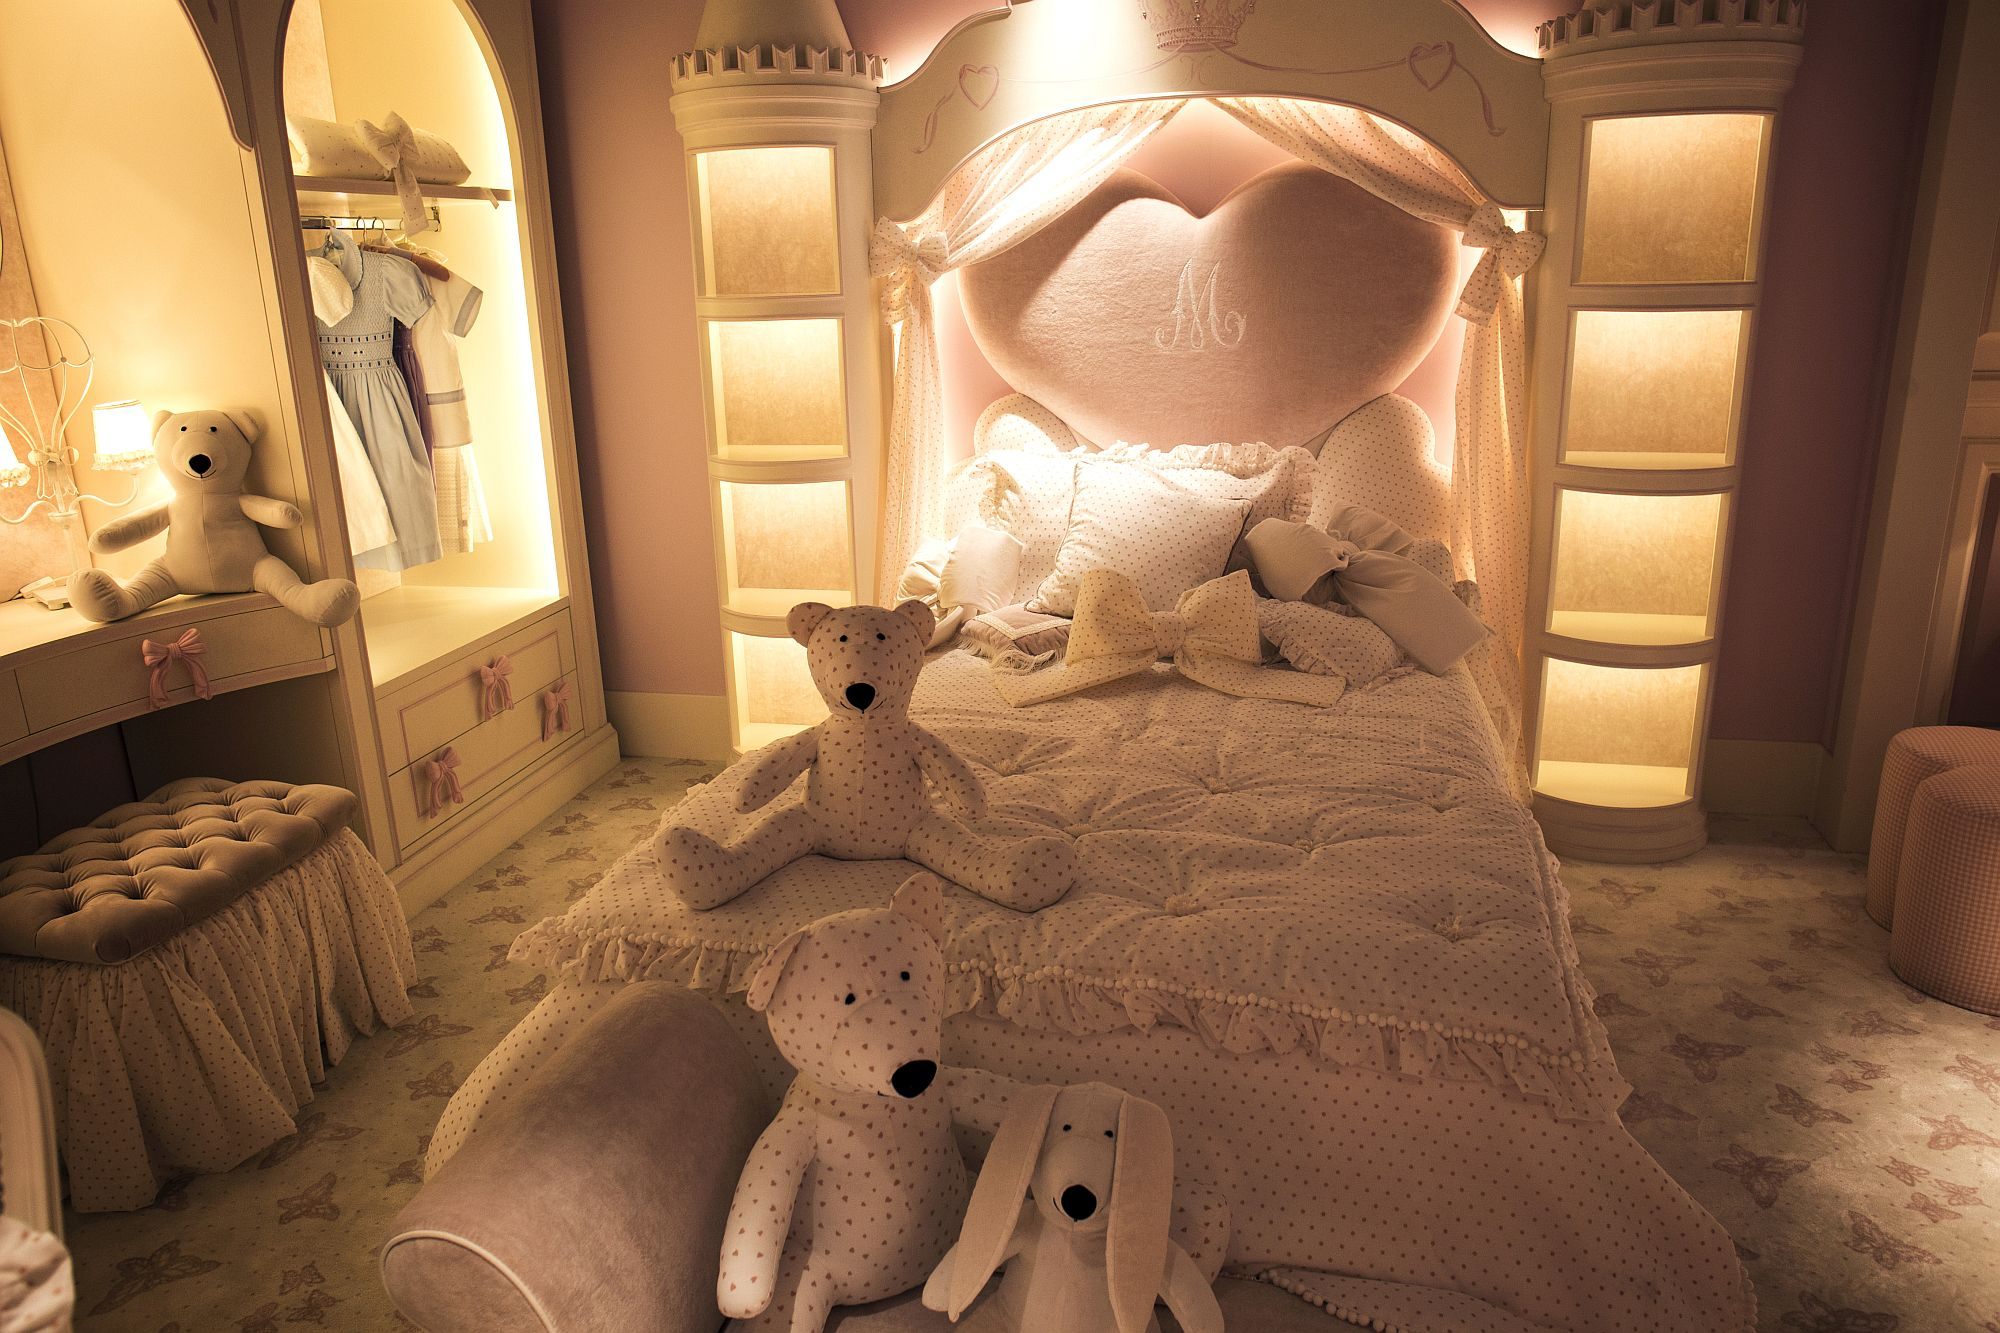 Lighting-plays-a-major-role-in-shaping-the-luxurious-ambiance-of-this-girls-bedroom